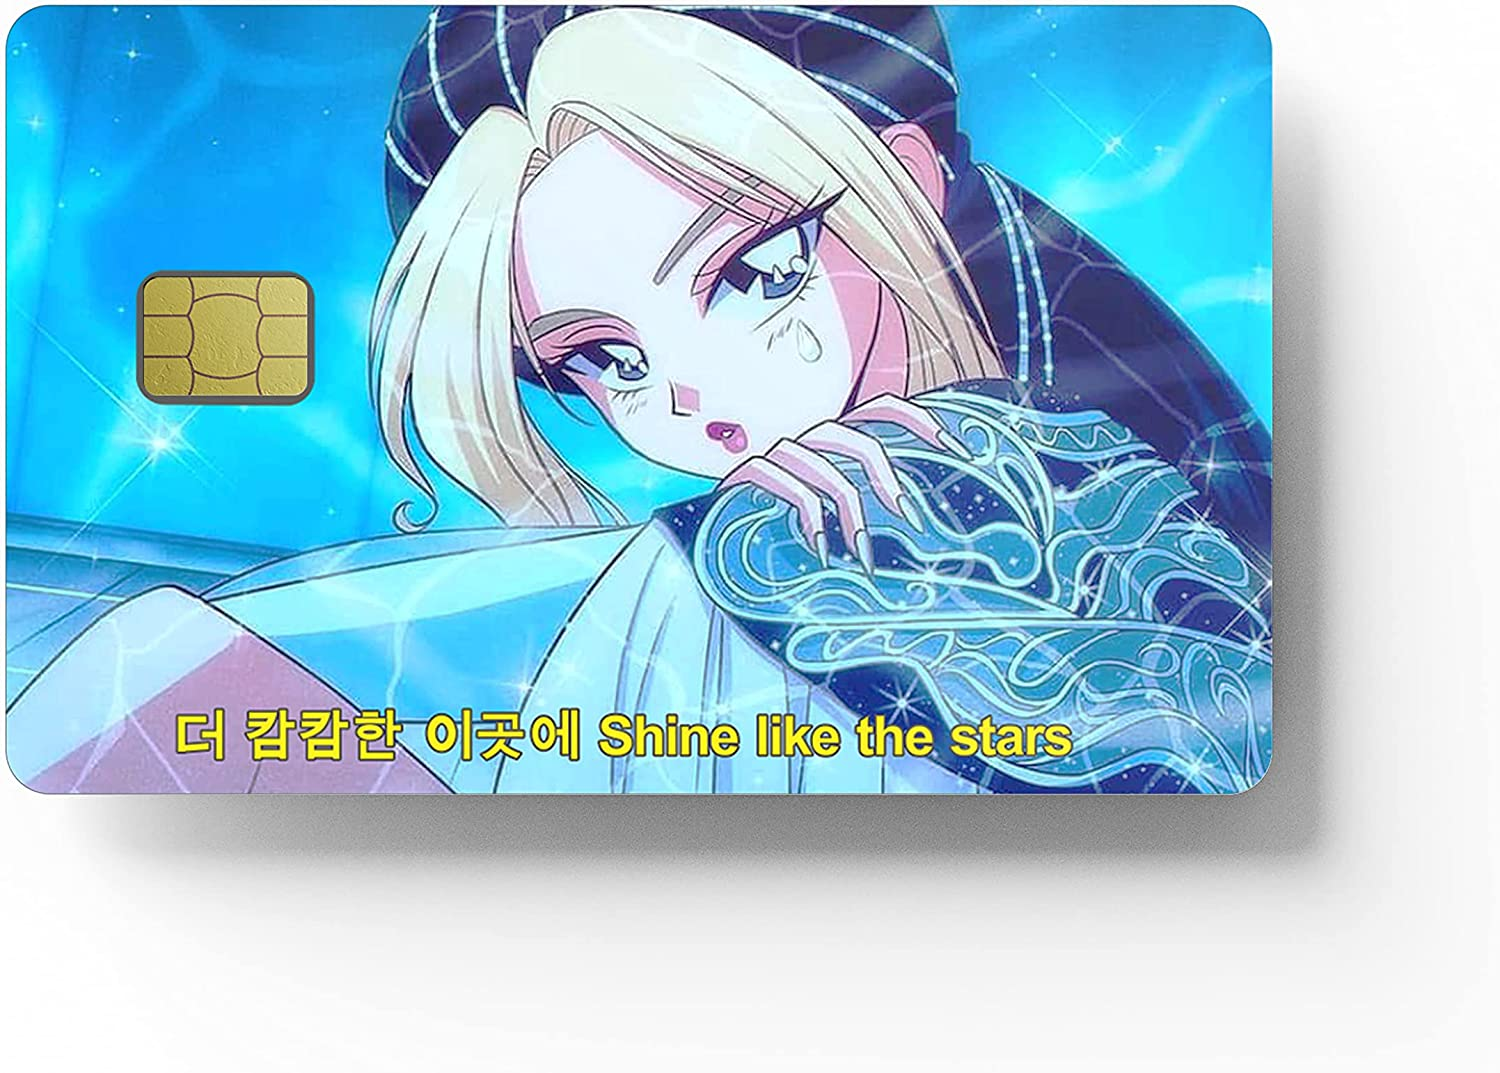 HK Studio Card Sticker with K-Pop Jennie BP | High-Performance Vinyl Sticker for Key Card, Transportation, Debit, Credit Card Skin | Protecting & Personalizing Bank Card | Bubble Free, Super Slim, Waterproof Cover for Card